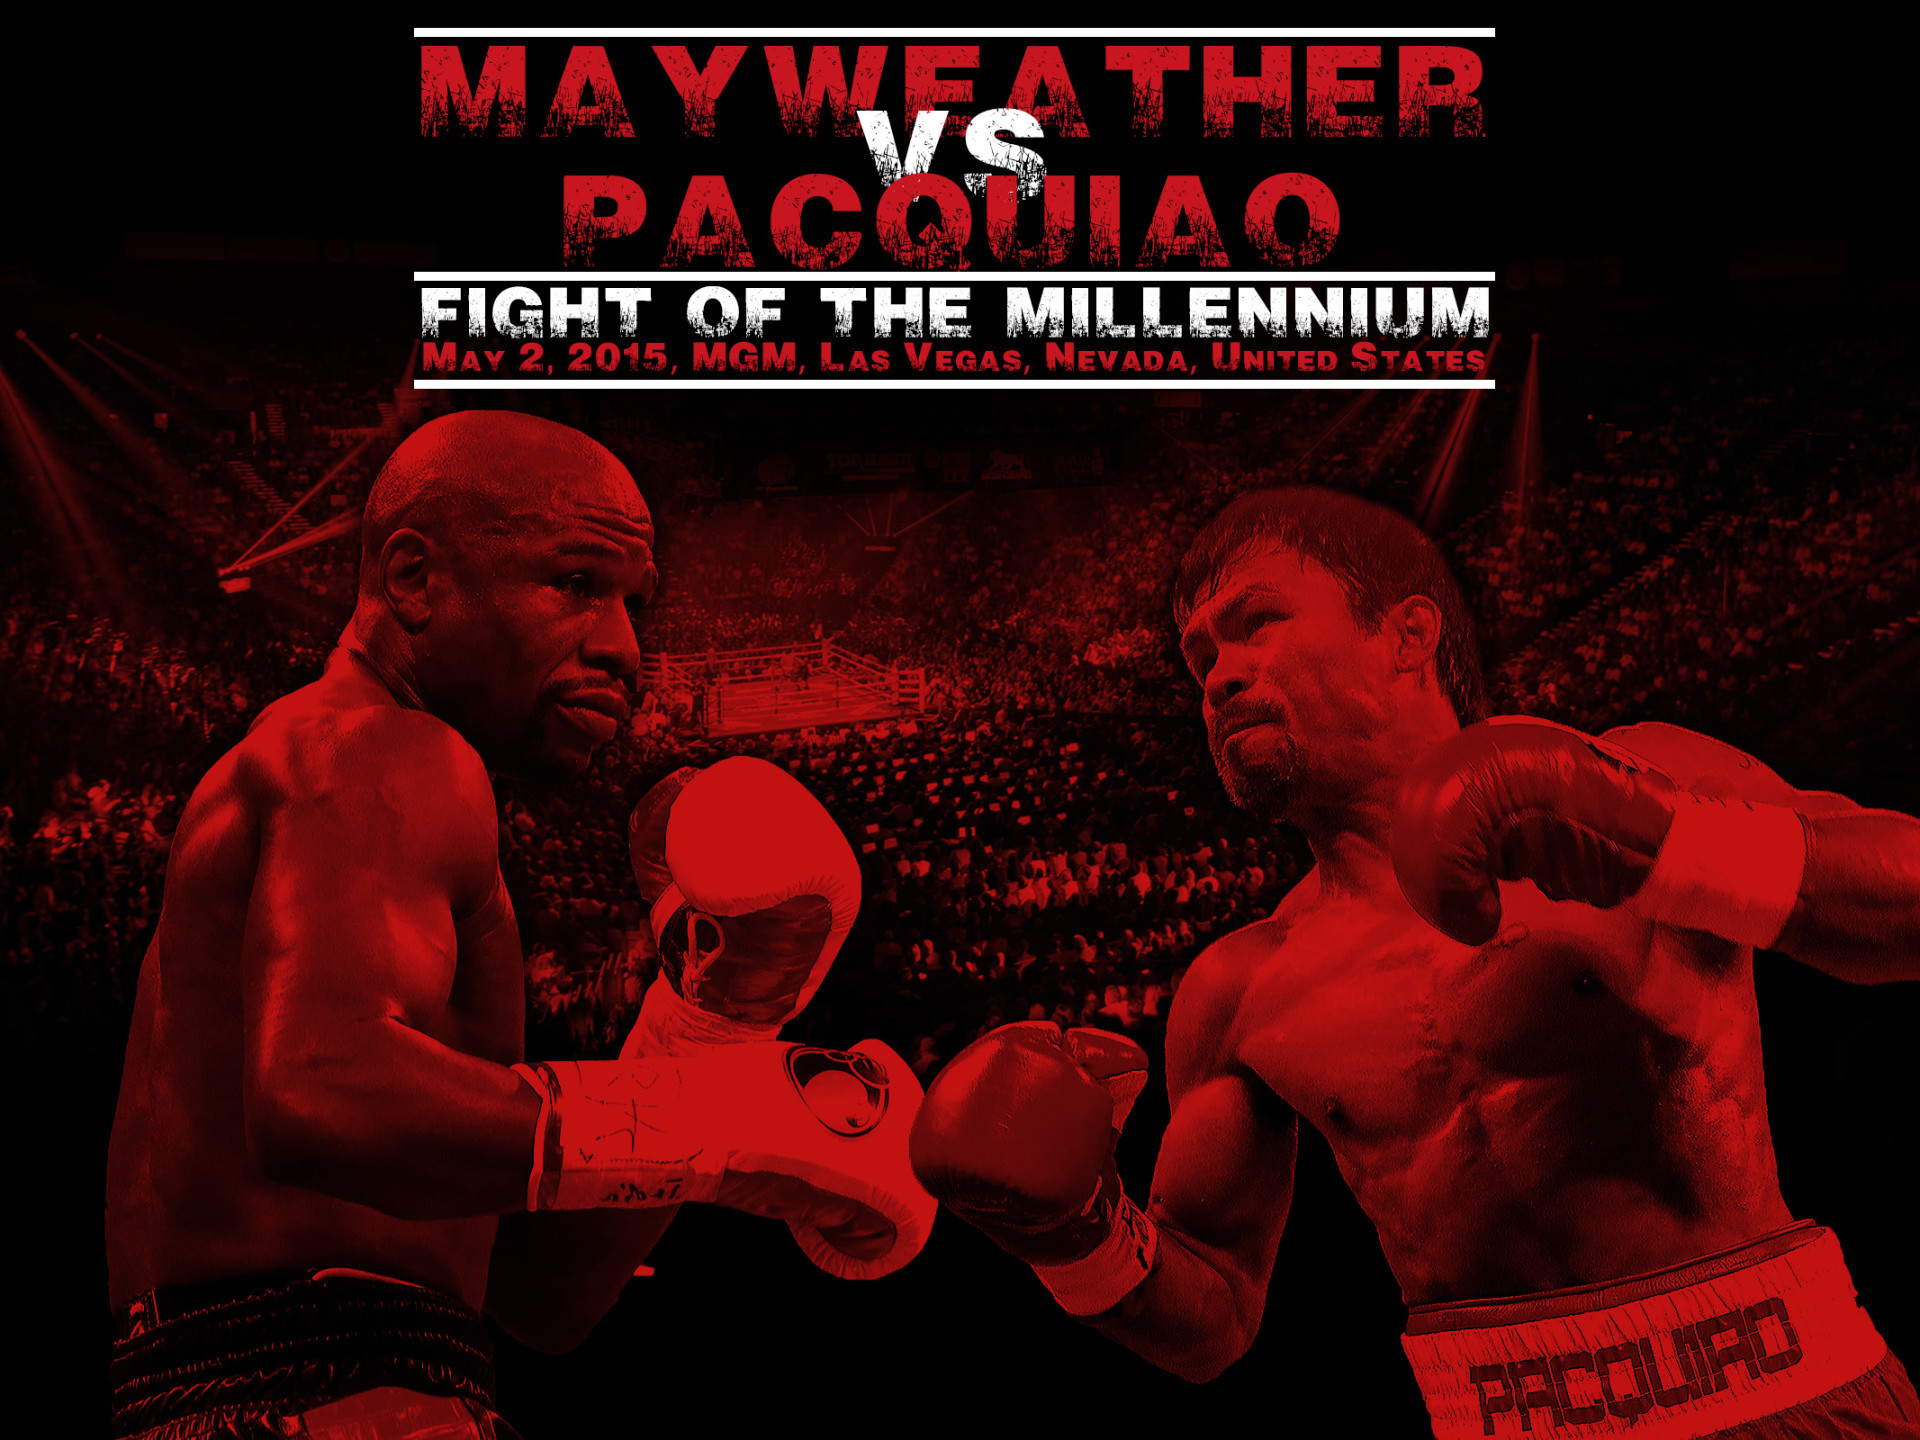 1920x1440 Floyd Mayweather Jr vs Manny Pacquiao HD Wallpapers